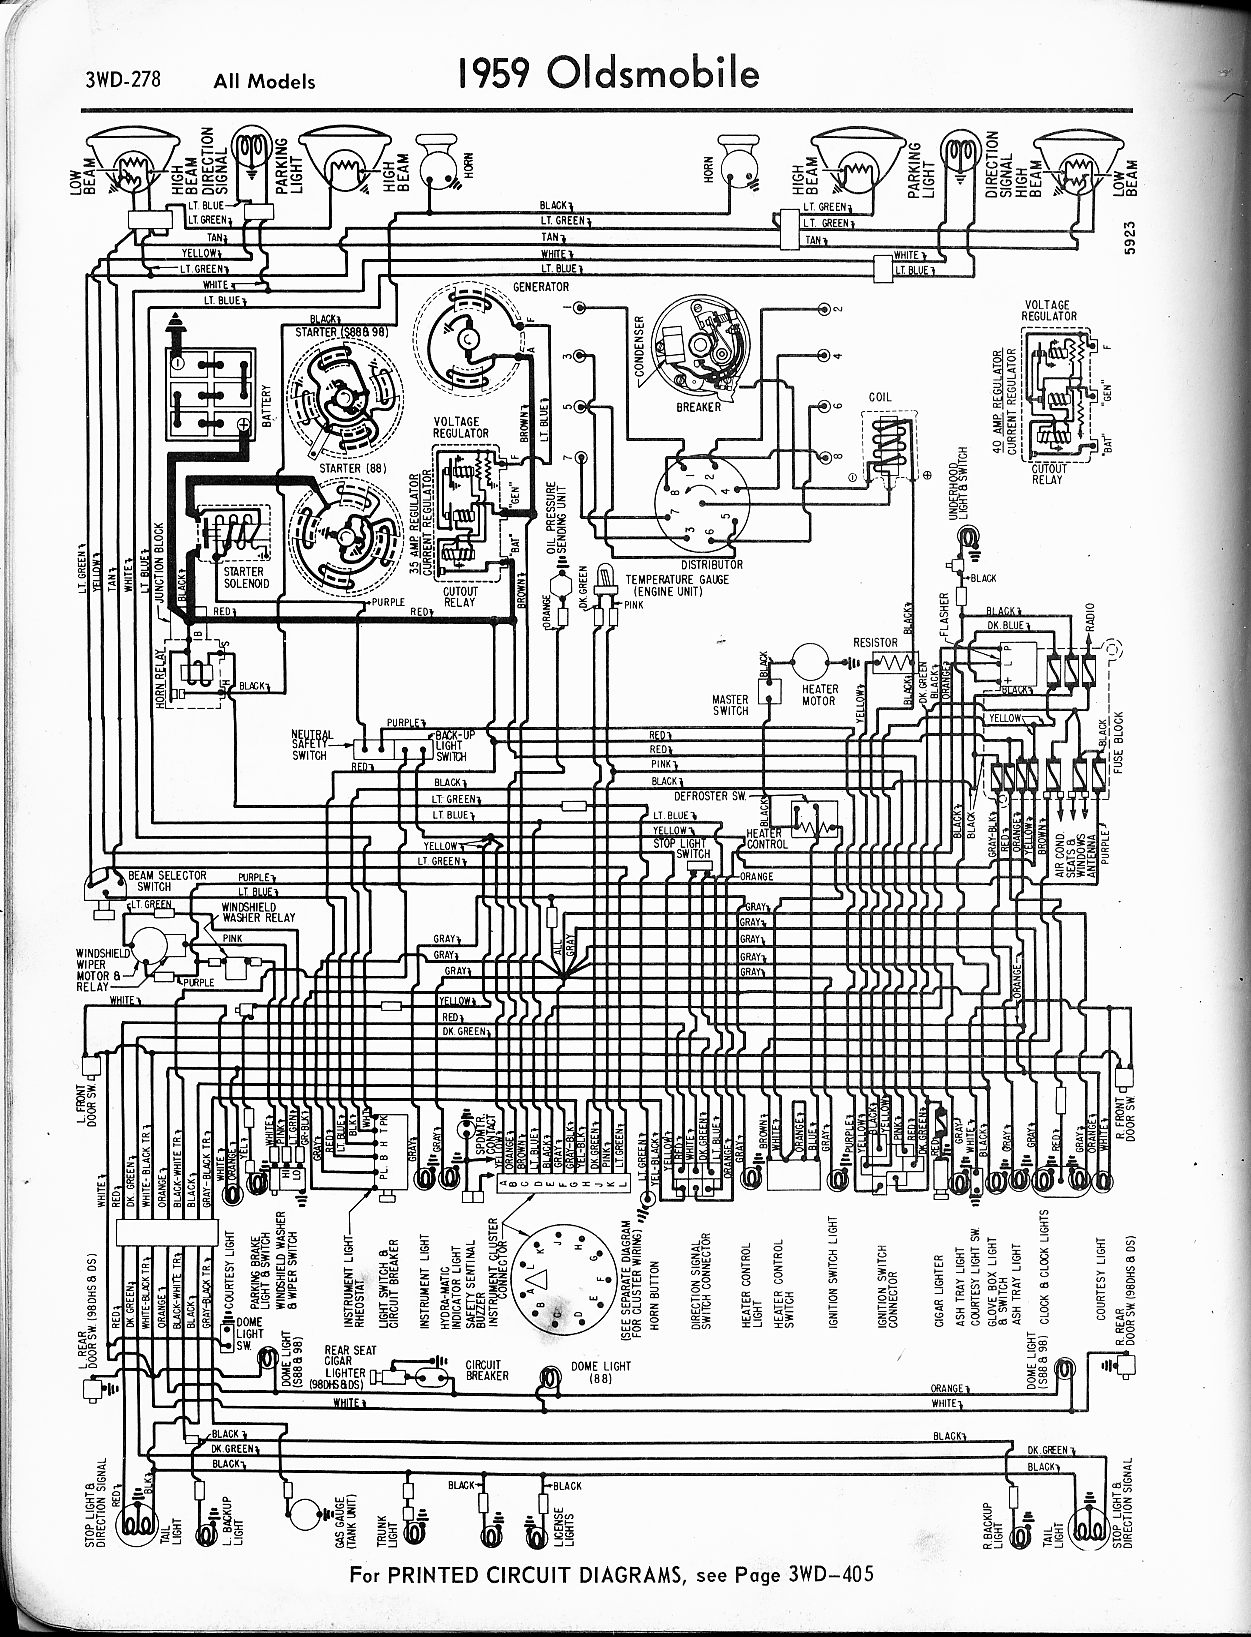 oldsmobile wiring diagrams the old car manual project rh oldcarmanualproject com olds 88 fuse box oldsmobile 88 fuse box diagram